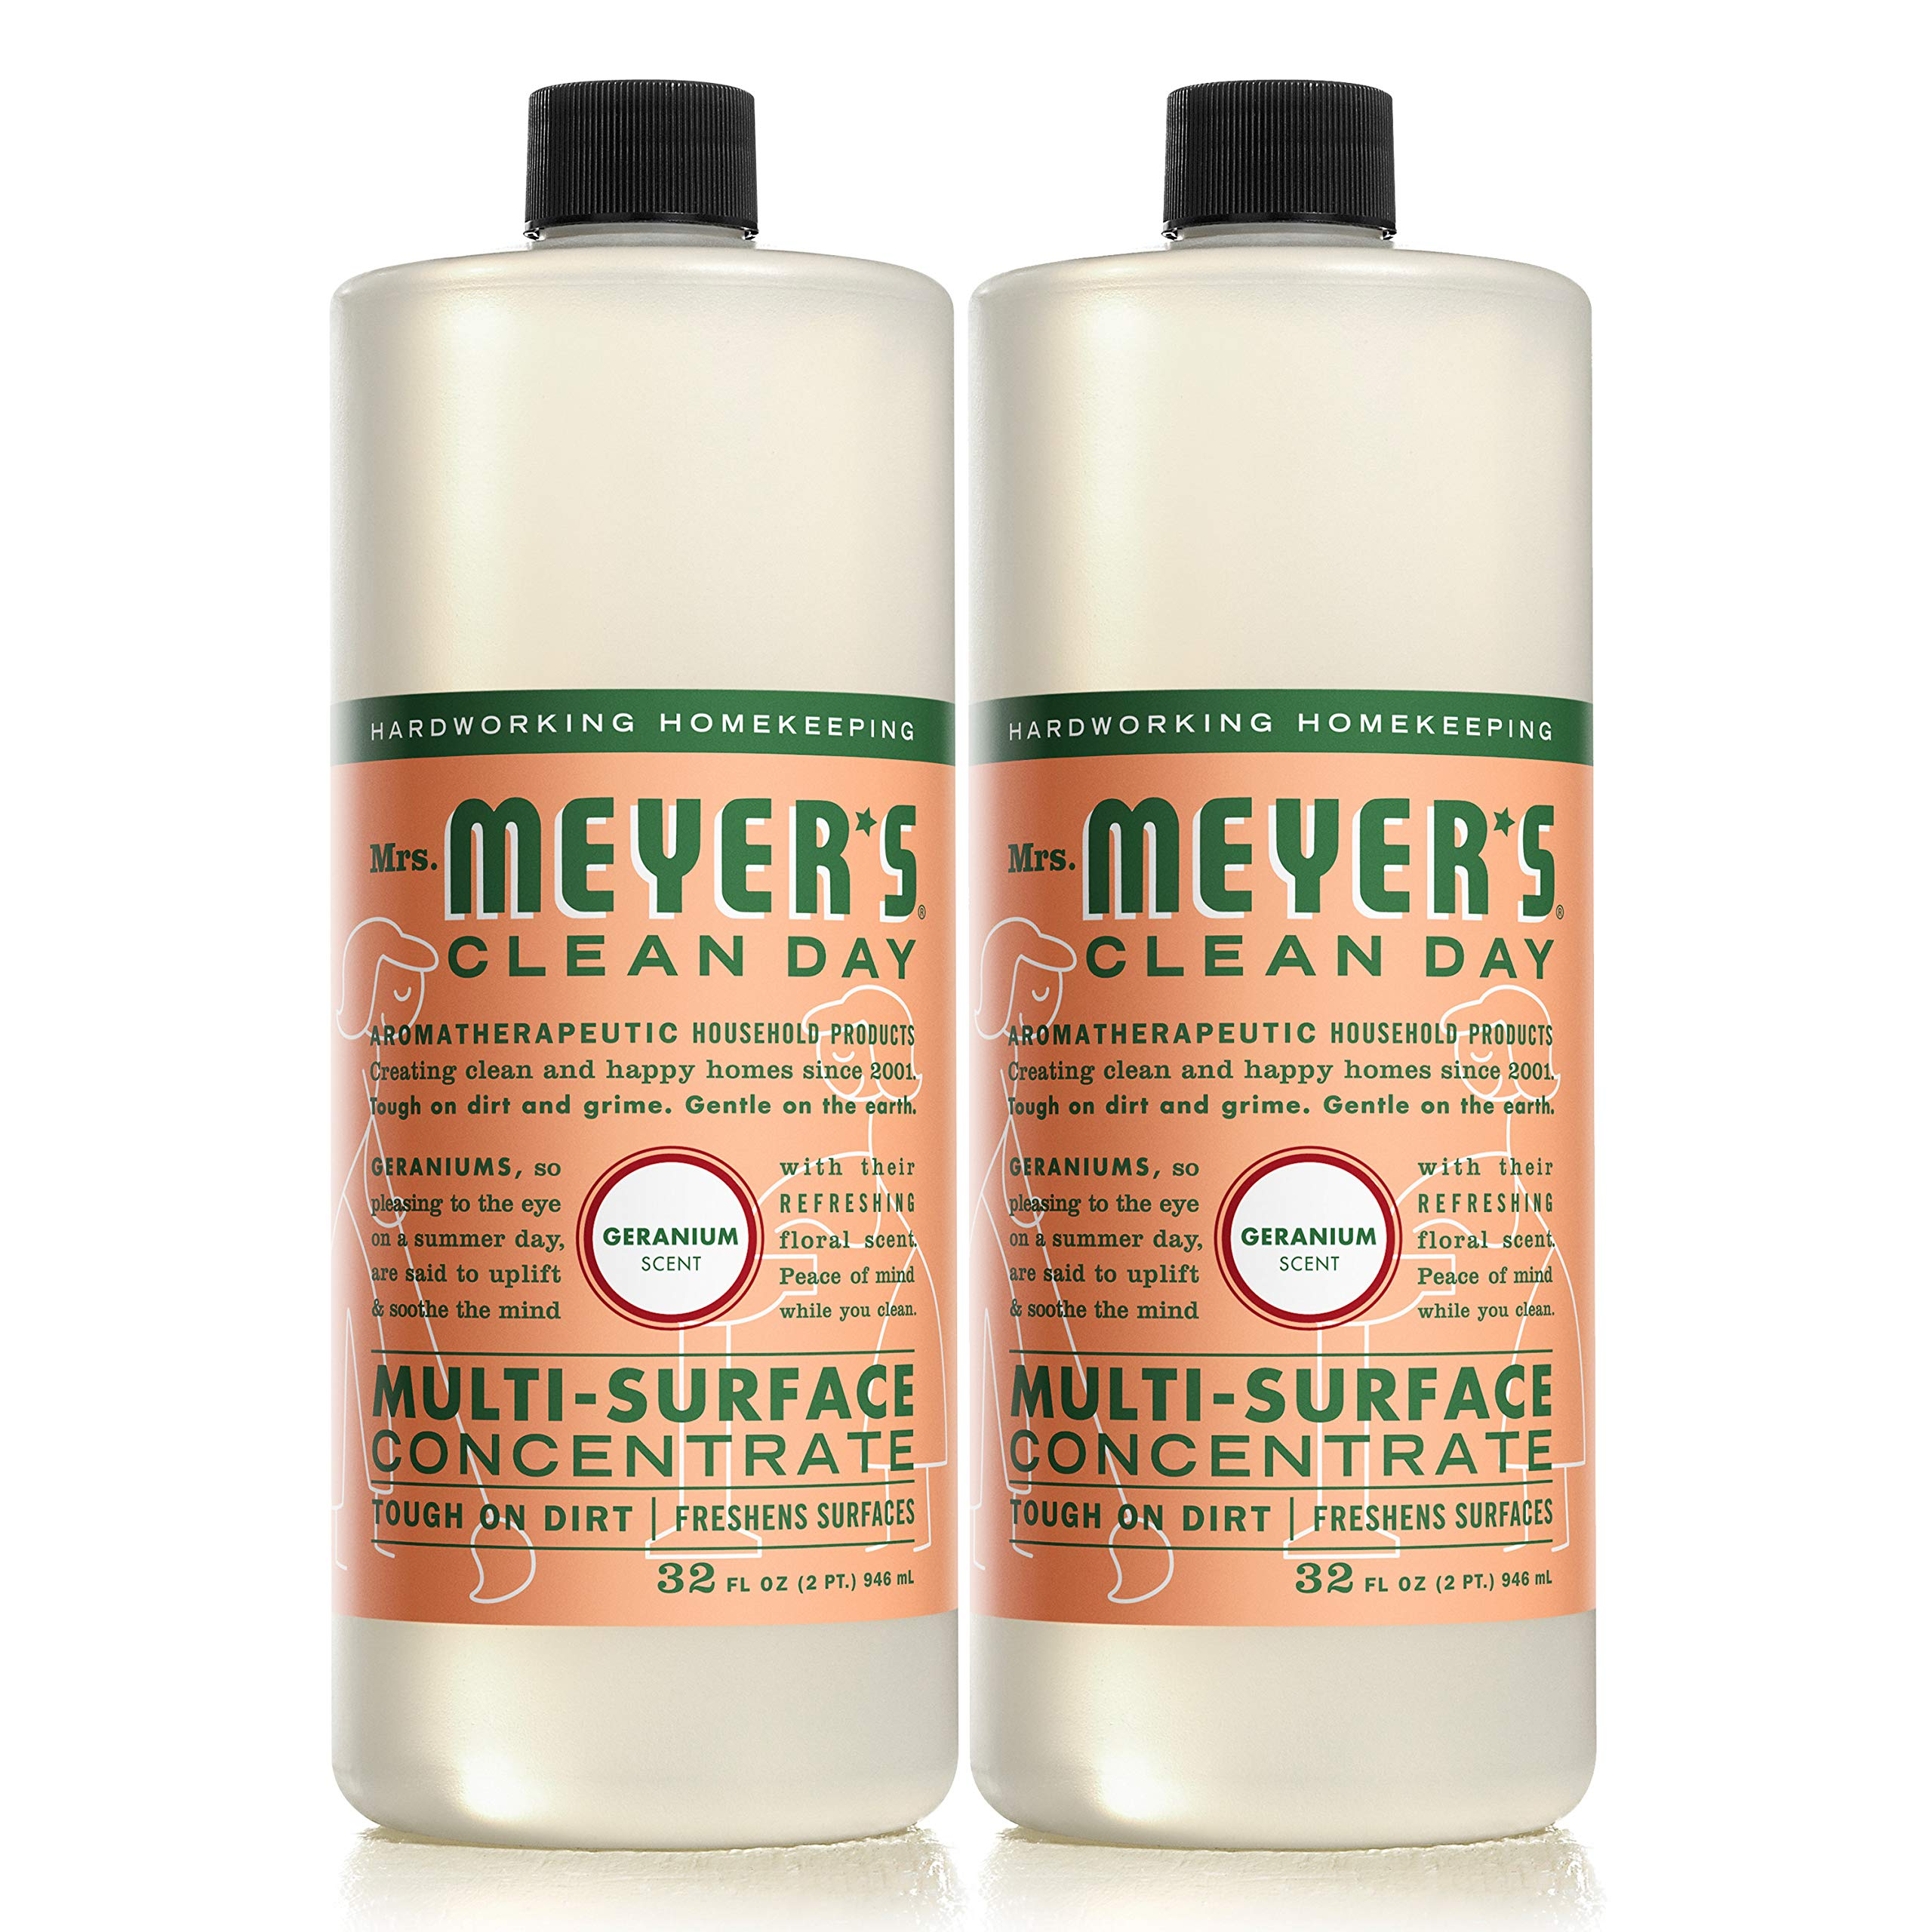 Mrs. Meyer's Clean Day Multi-Surface Concentrate, Geranium, 32 fl oz, 2 ct by Mrs. Meyer's Clean Day (Image #2)